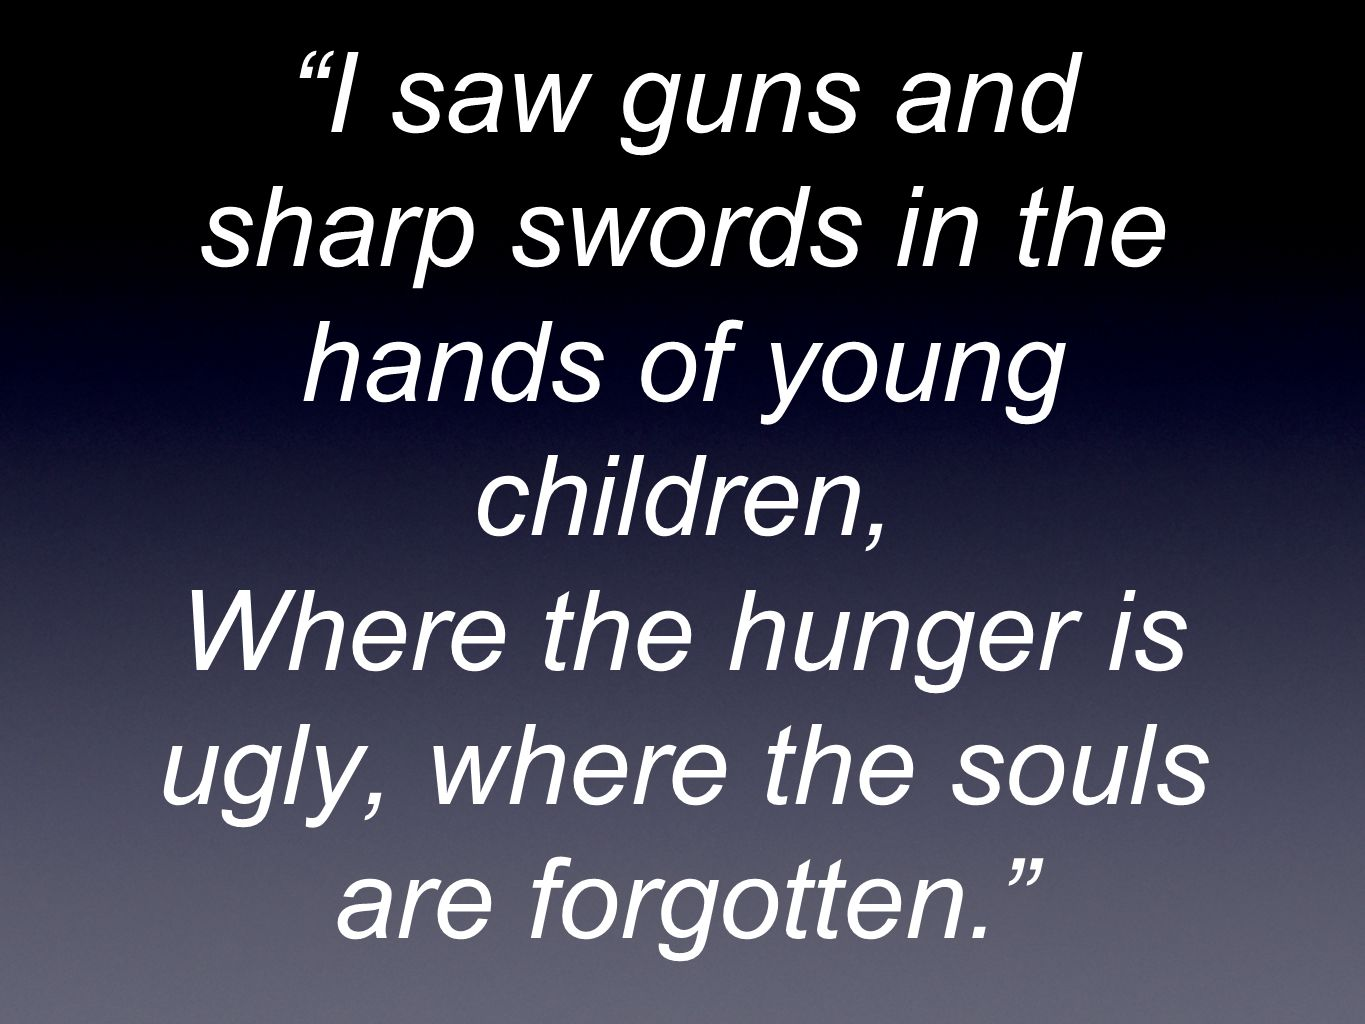 I saw guns and sharp swords in the hands of young children, Where the hunger is ugly, where the souls are forgotten.